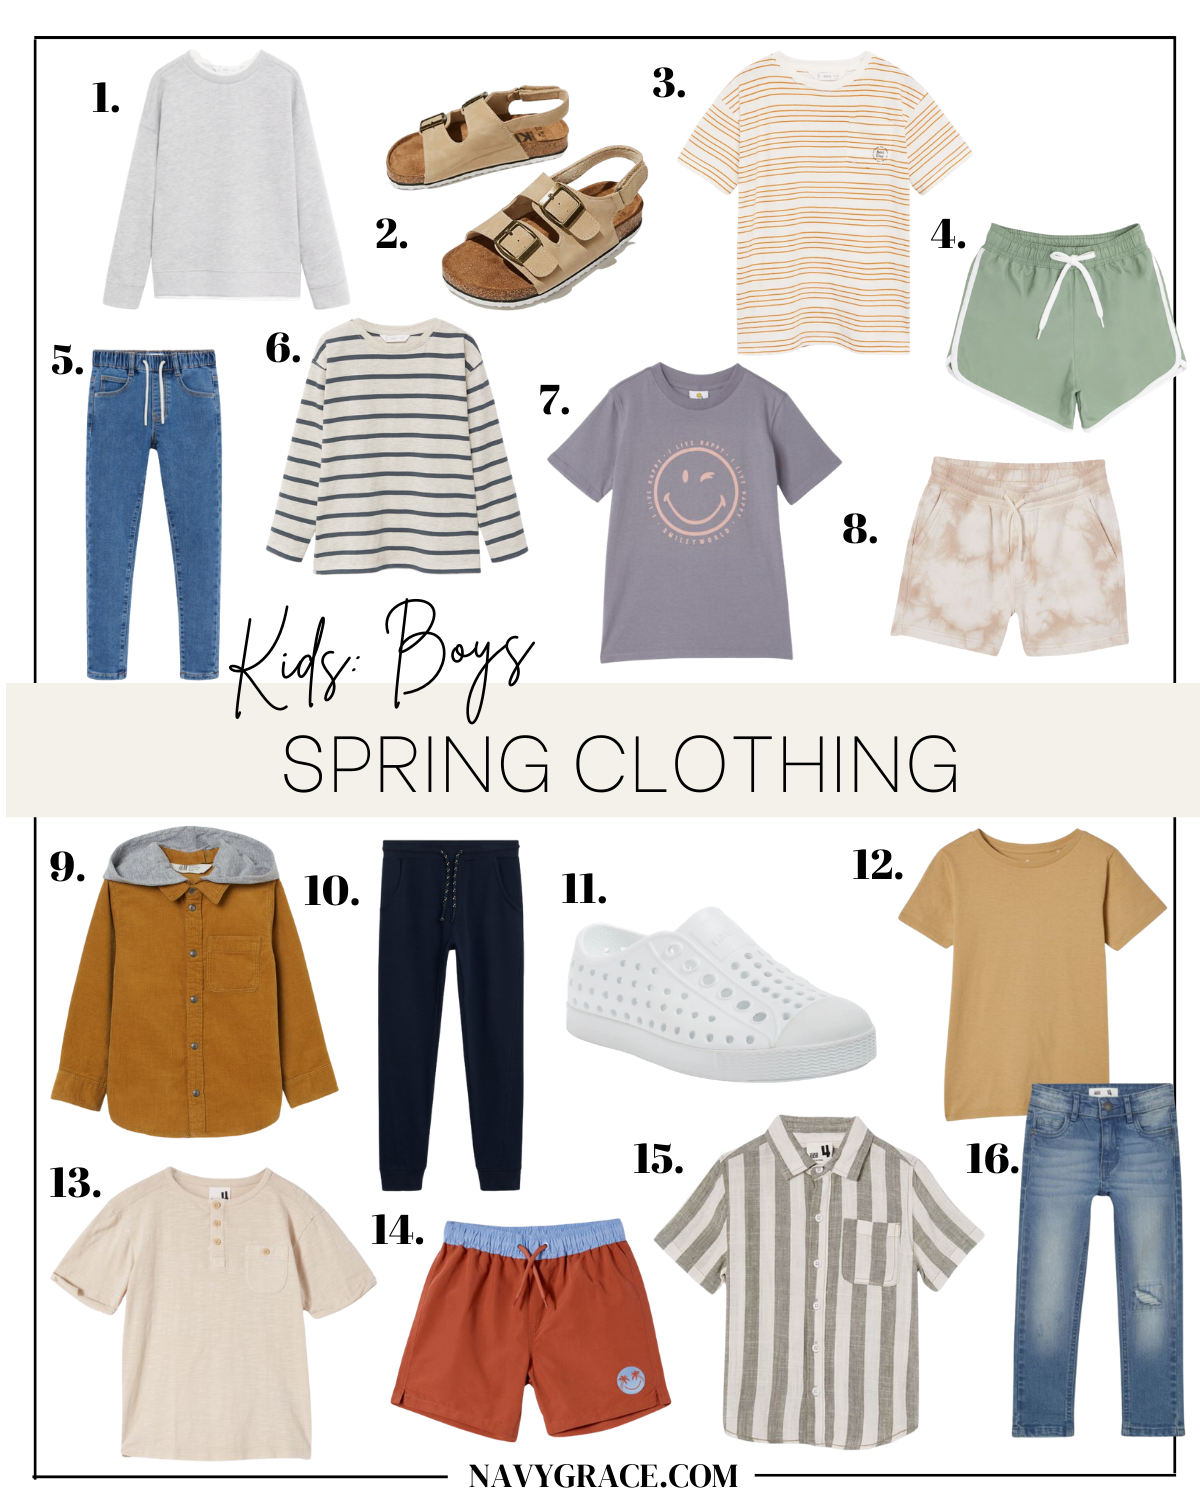 spring clothing for boys